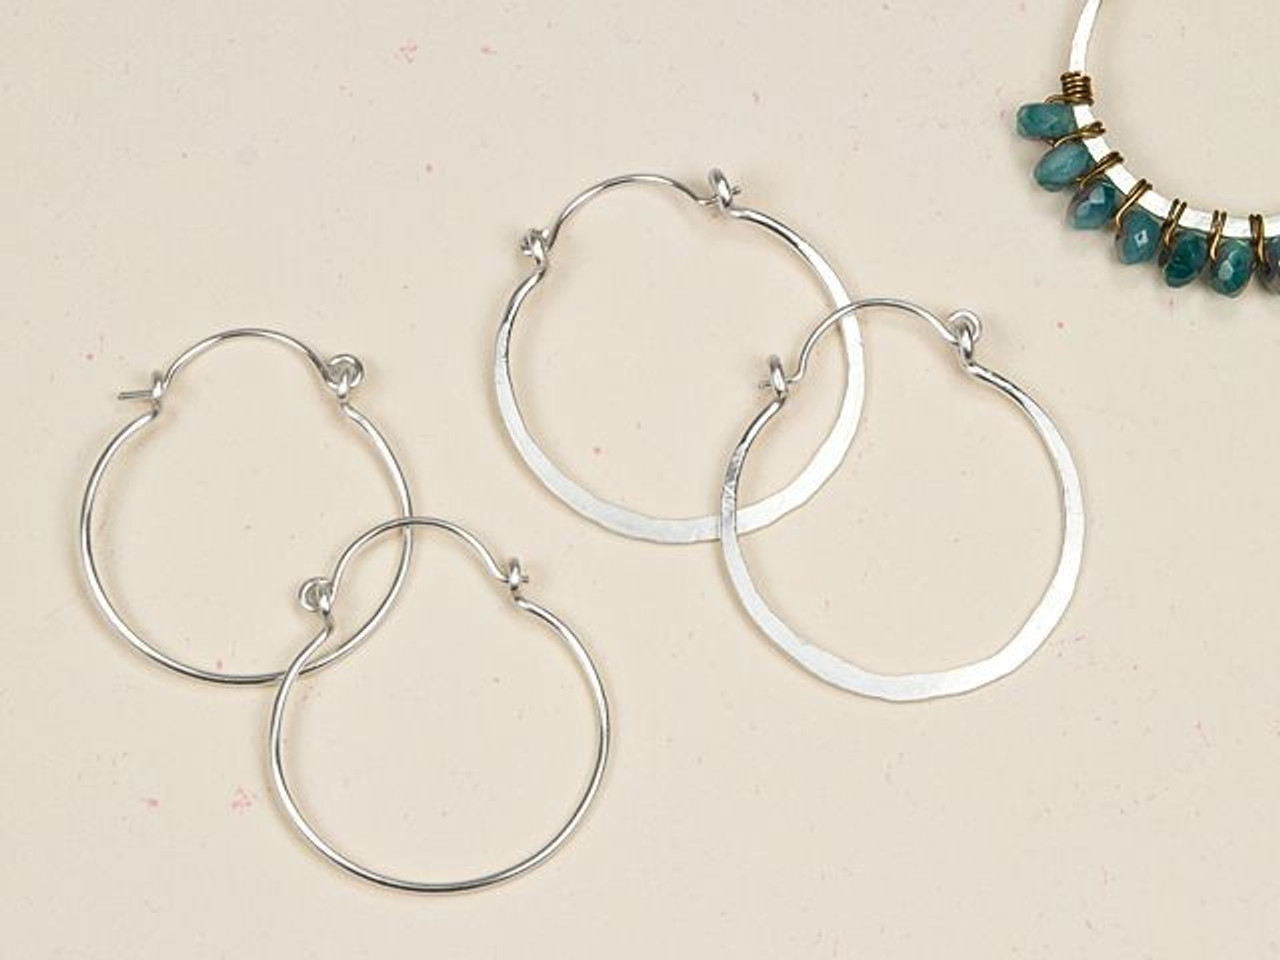 1 LARGE STERLING SILVER 925 SIMPLE ROUNDED PENDANT PINCH BAIL HOLDER 12 X 7 MM